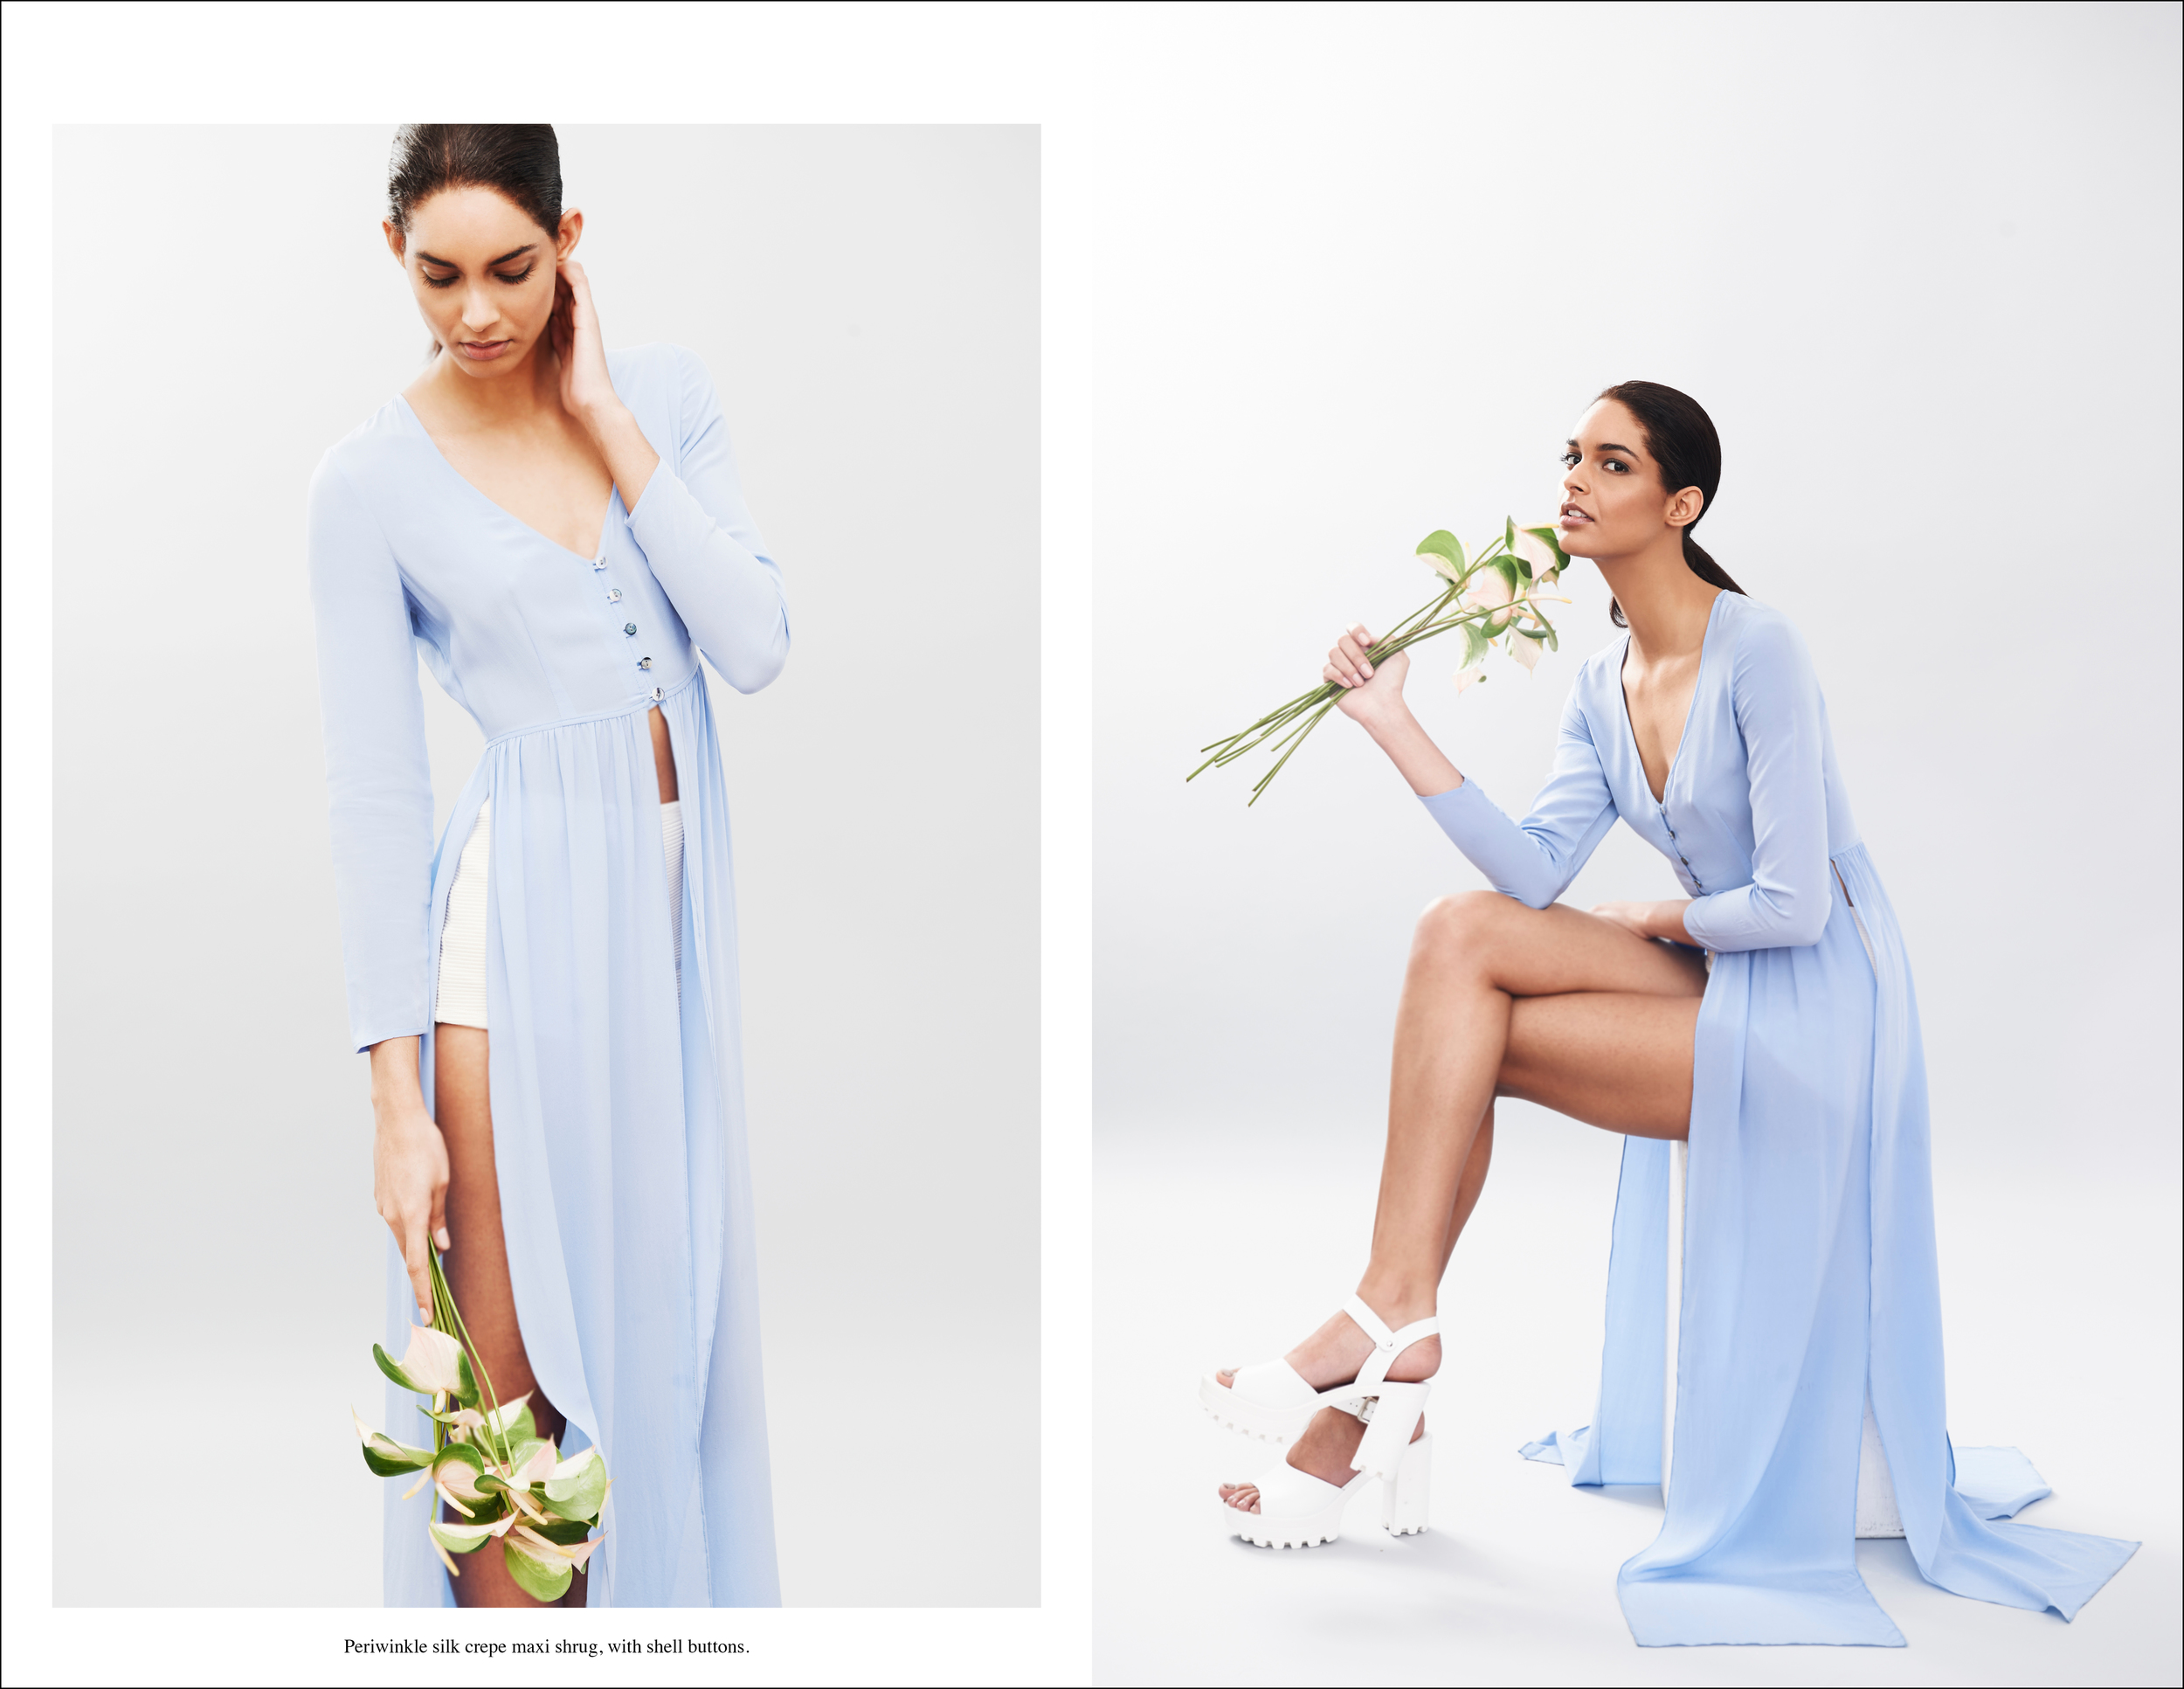 Abacxi Campaign Periwinkle silk crepe maxi shrug, with shell buttons.jpg